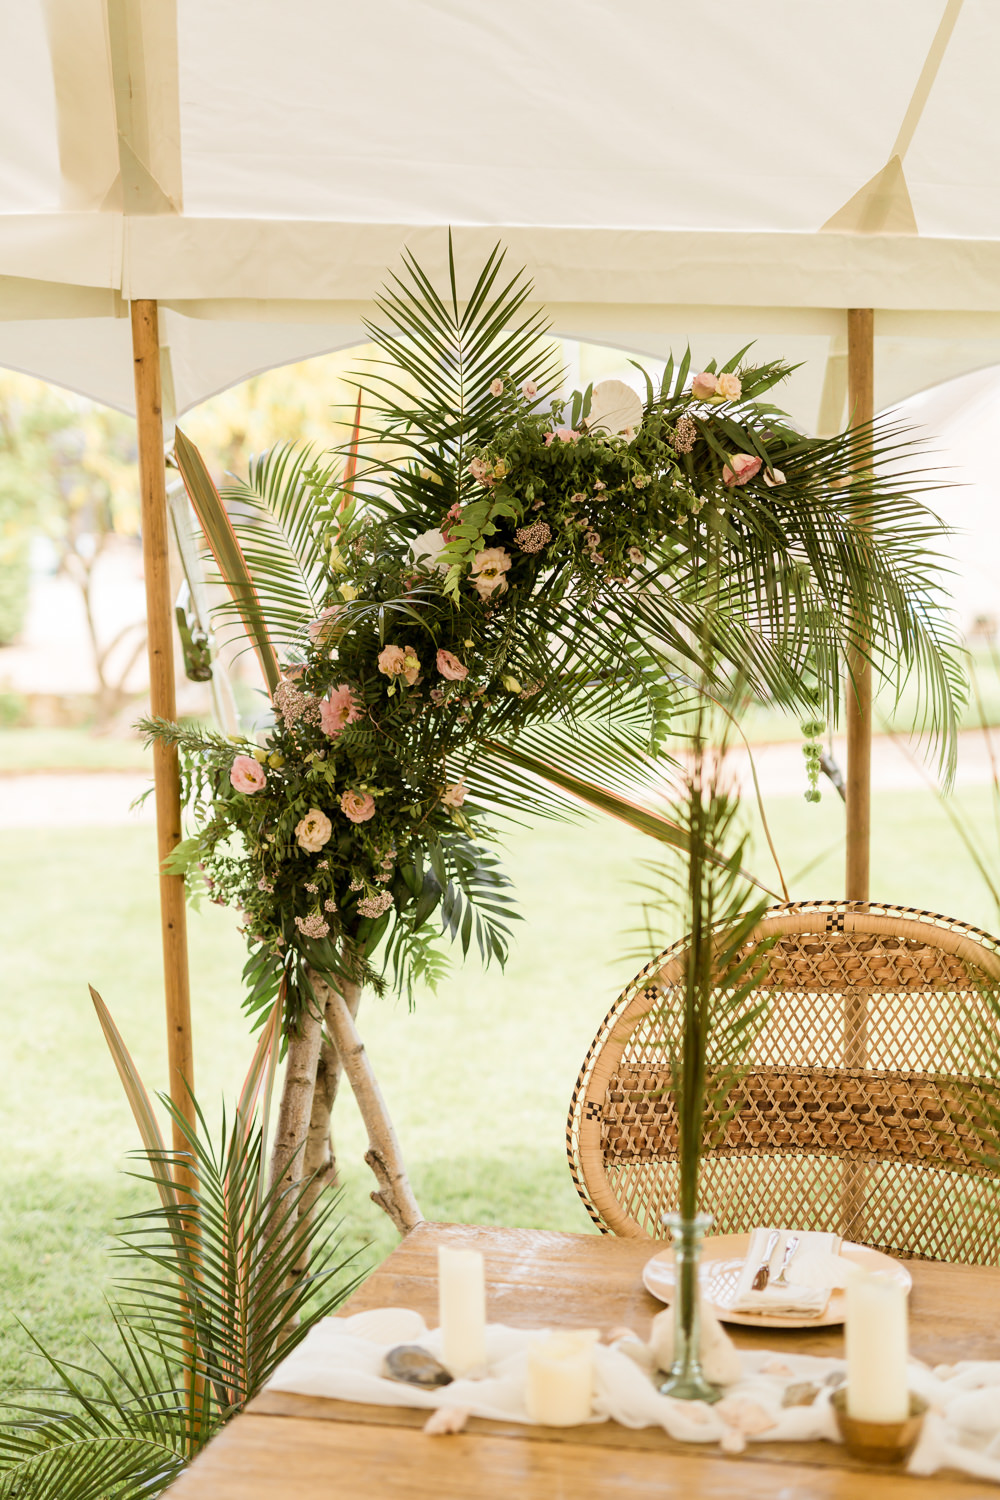 Backdrop Arch Table Palm Leaves Rosemary Pistache Eustoma Flowers Bride Bridal Pink Foliage Greenery Shells Tropical Boho Countryside Wedding Ideas Sarah Brookes Photography